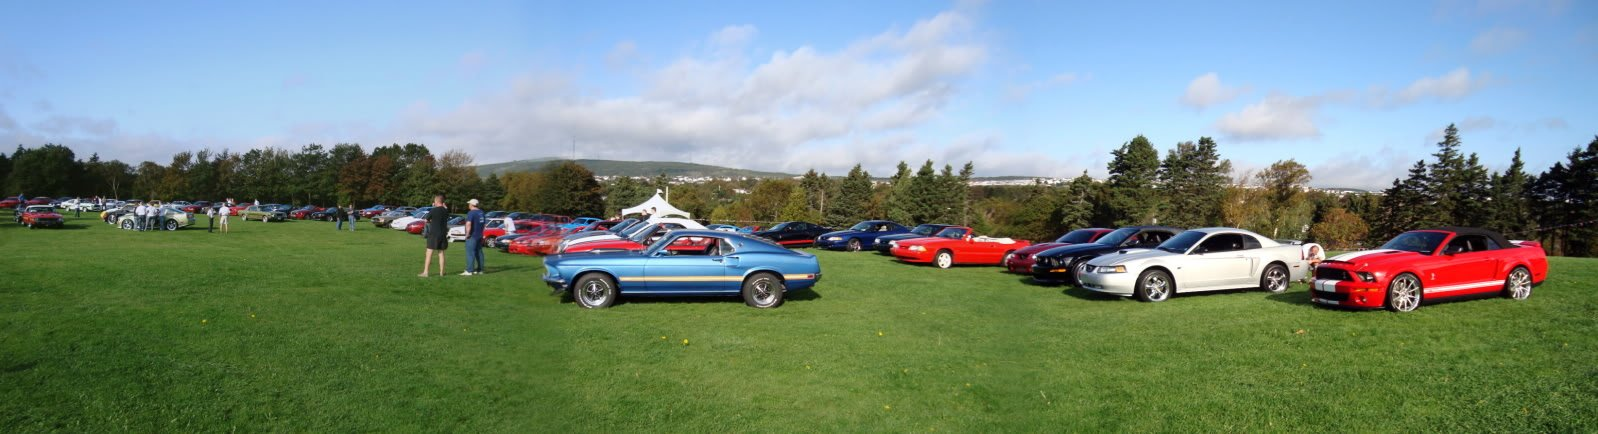 Mustangs in the Park: All Ford Mustangs Car Show in St. John's, Newfoundland-seahorse-62c69f7e.jpg